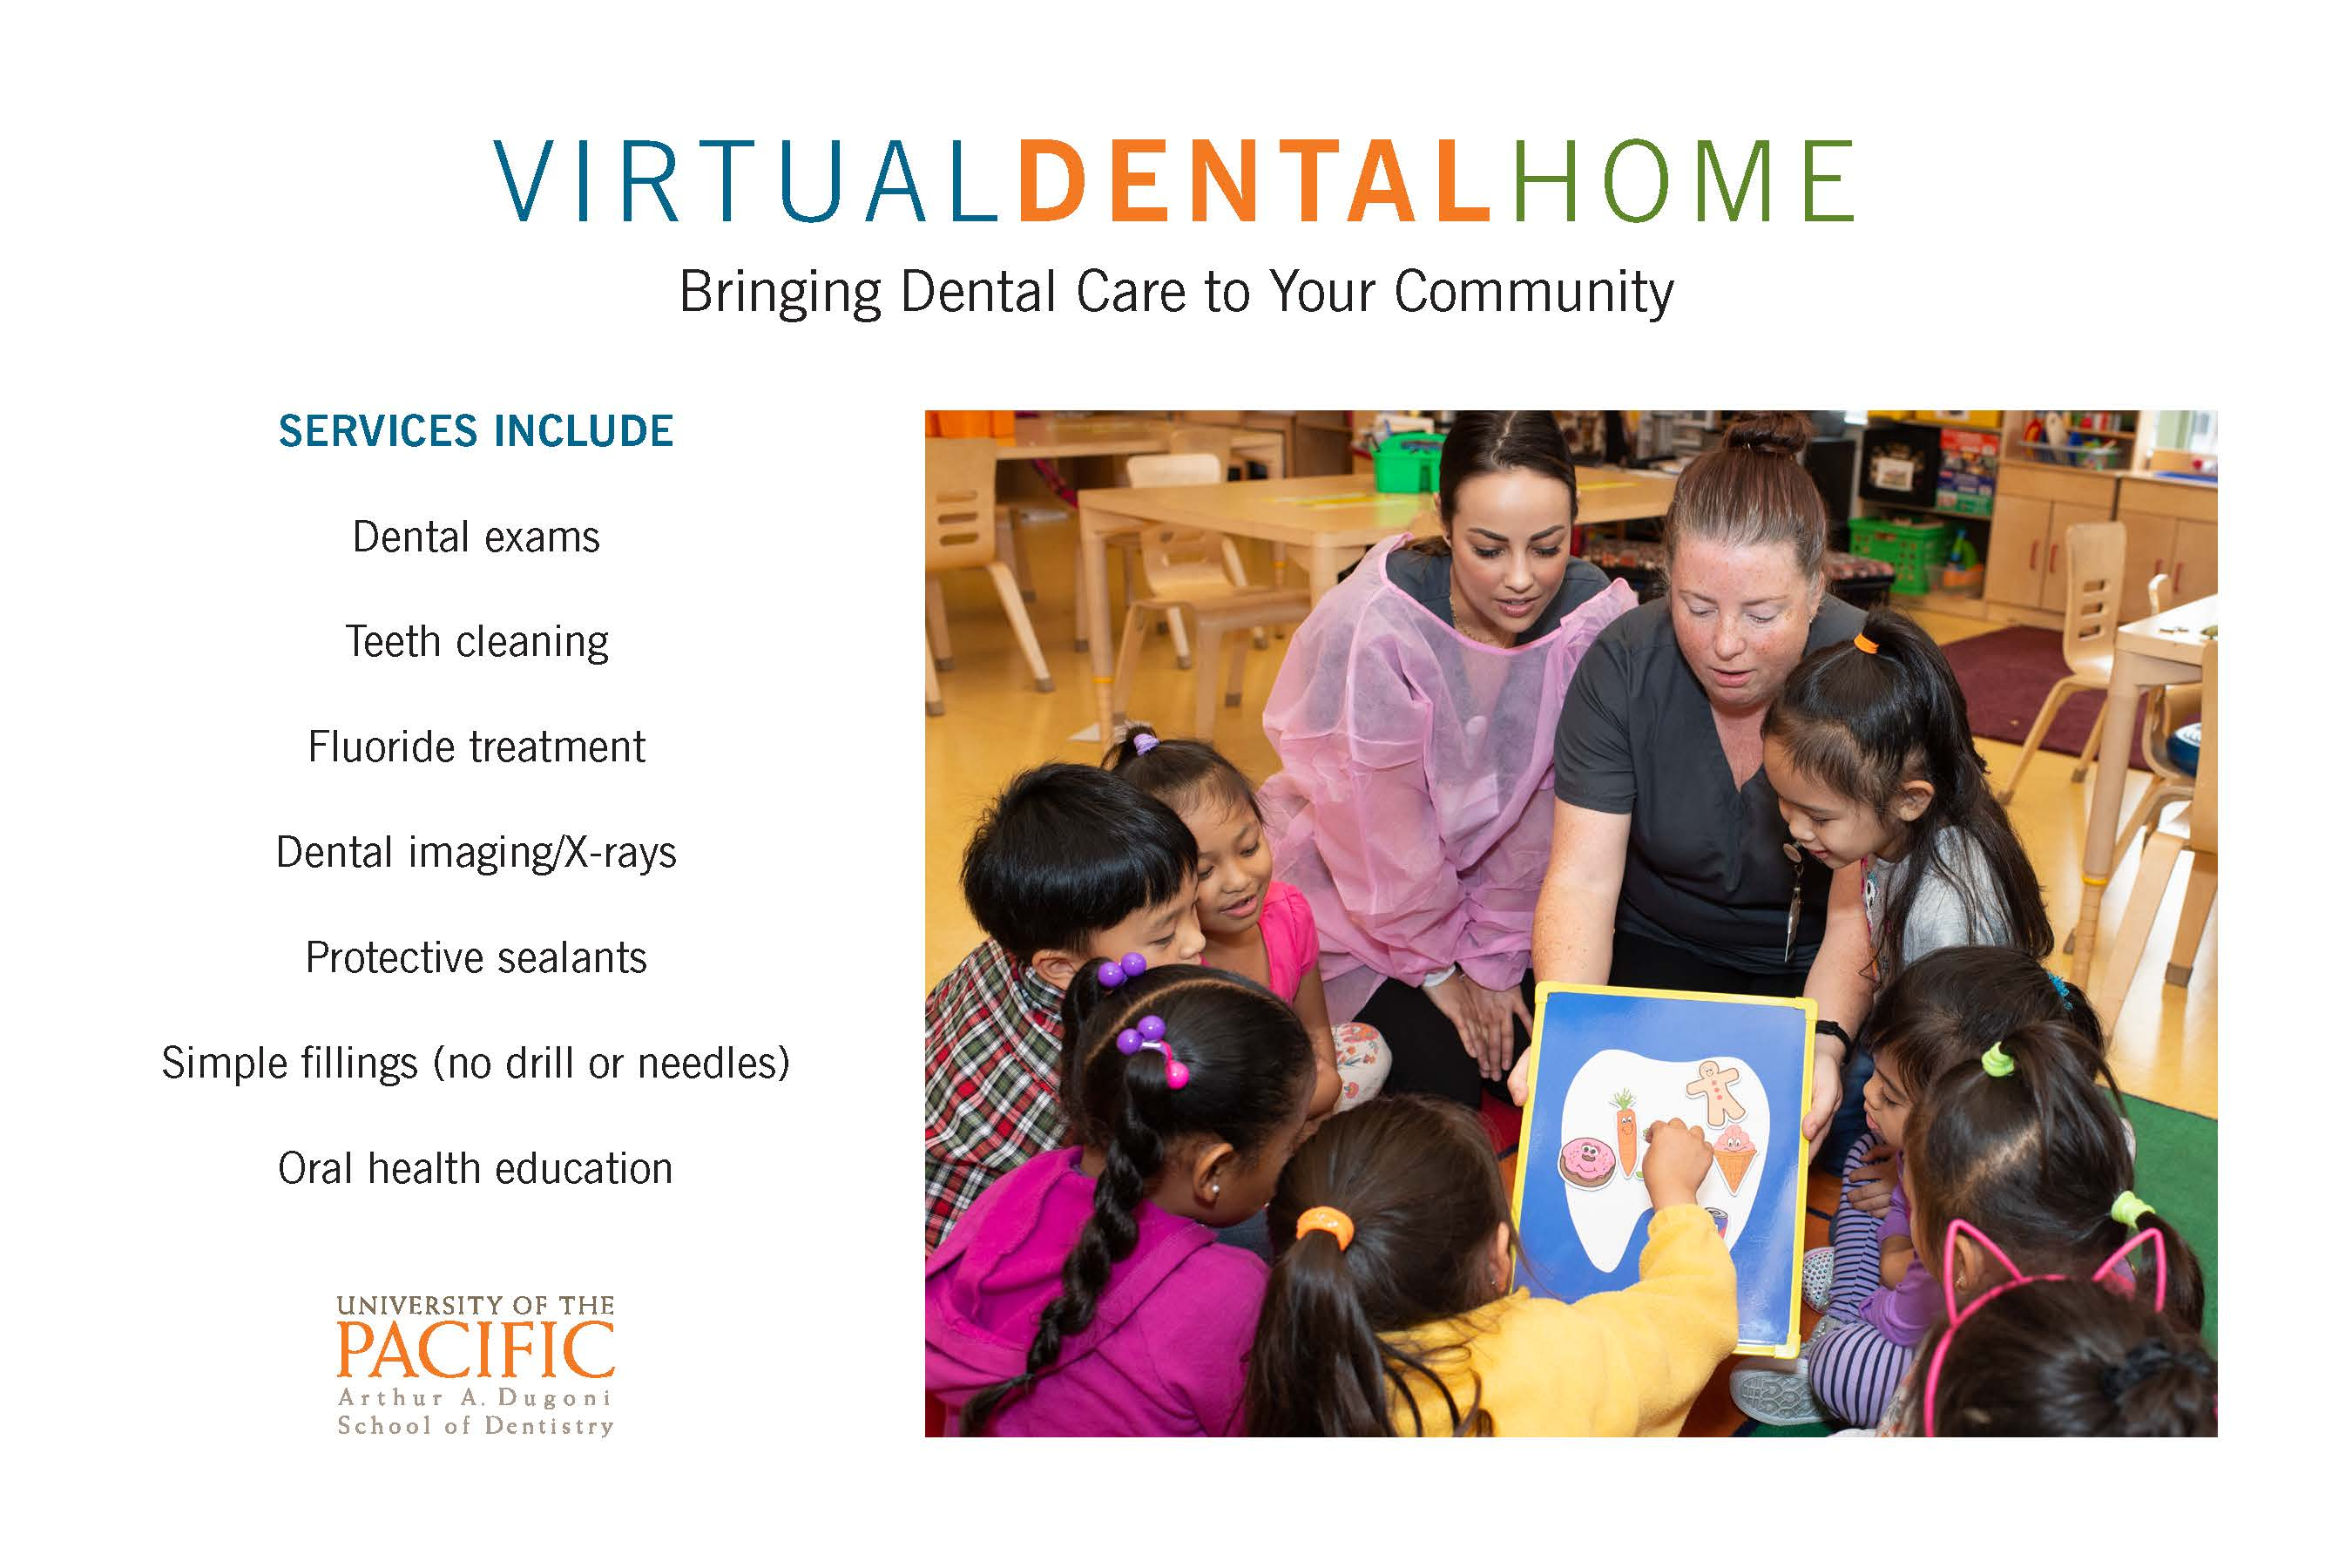 Virtual Dental Home photo, kids learning about tooth